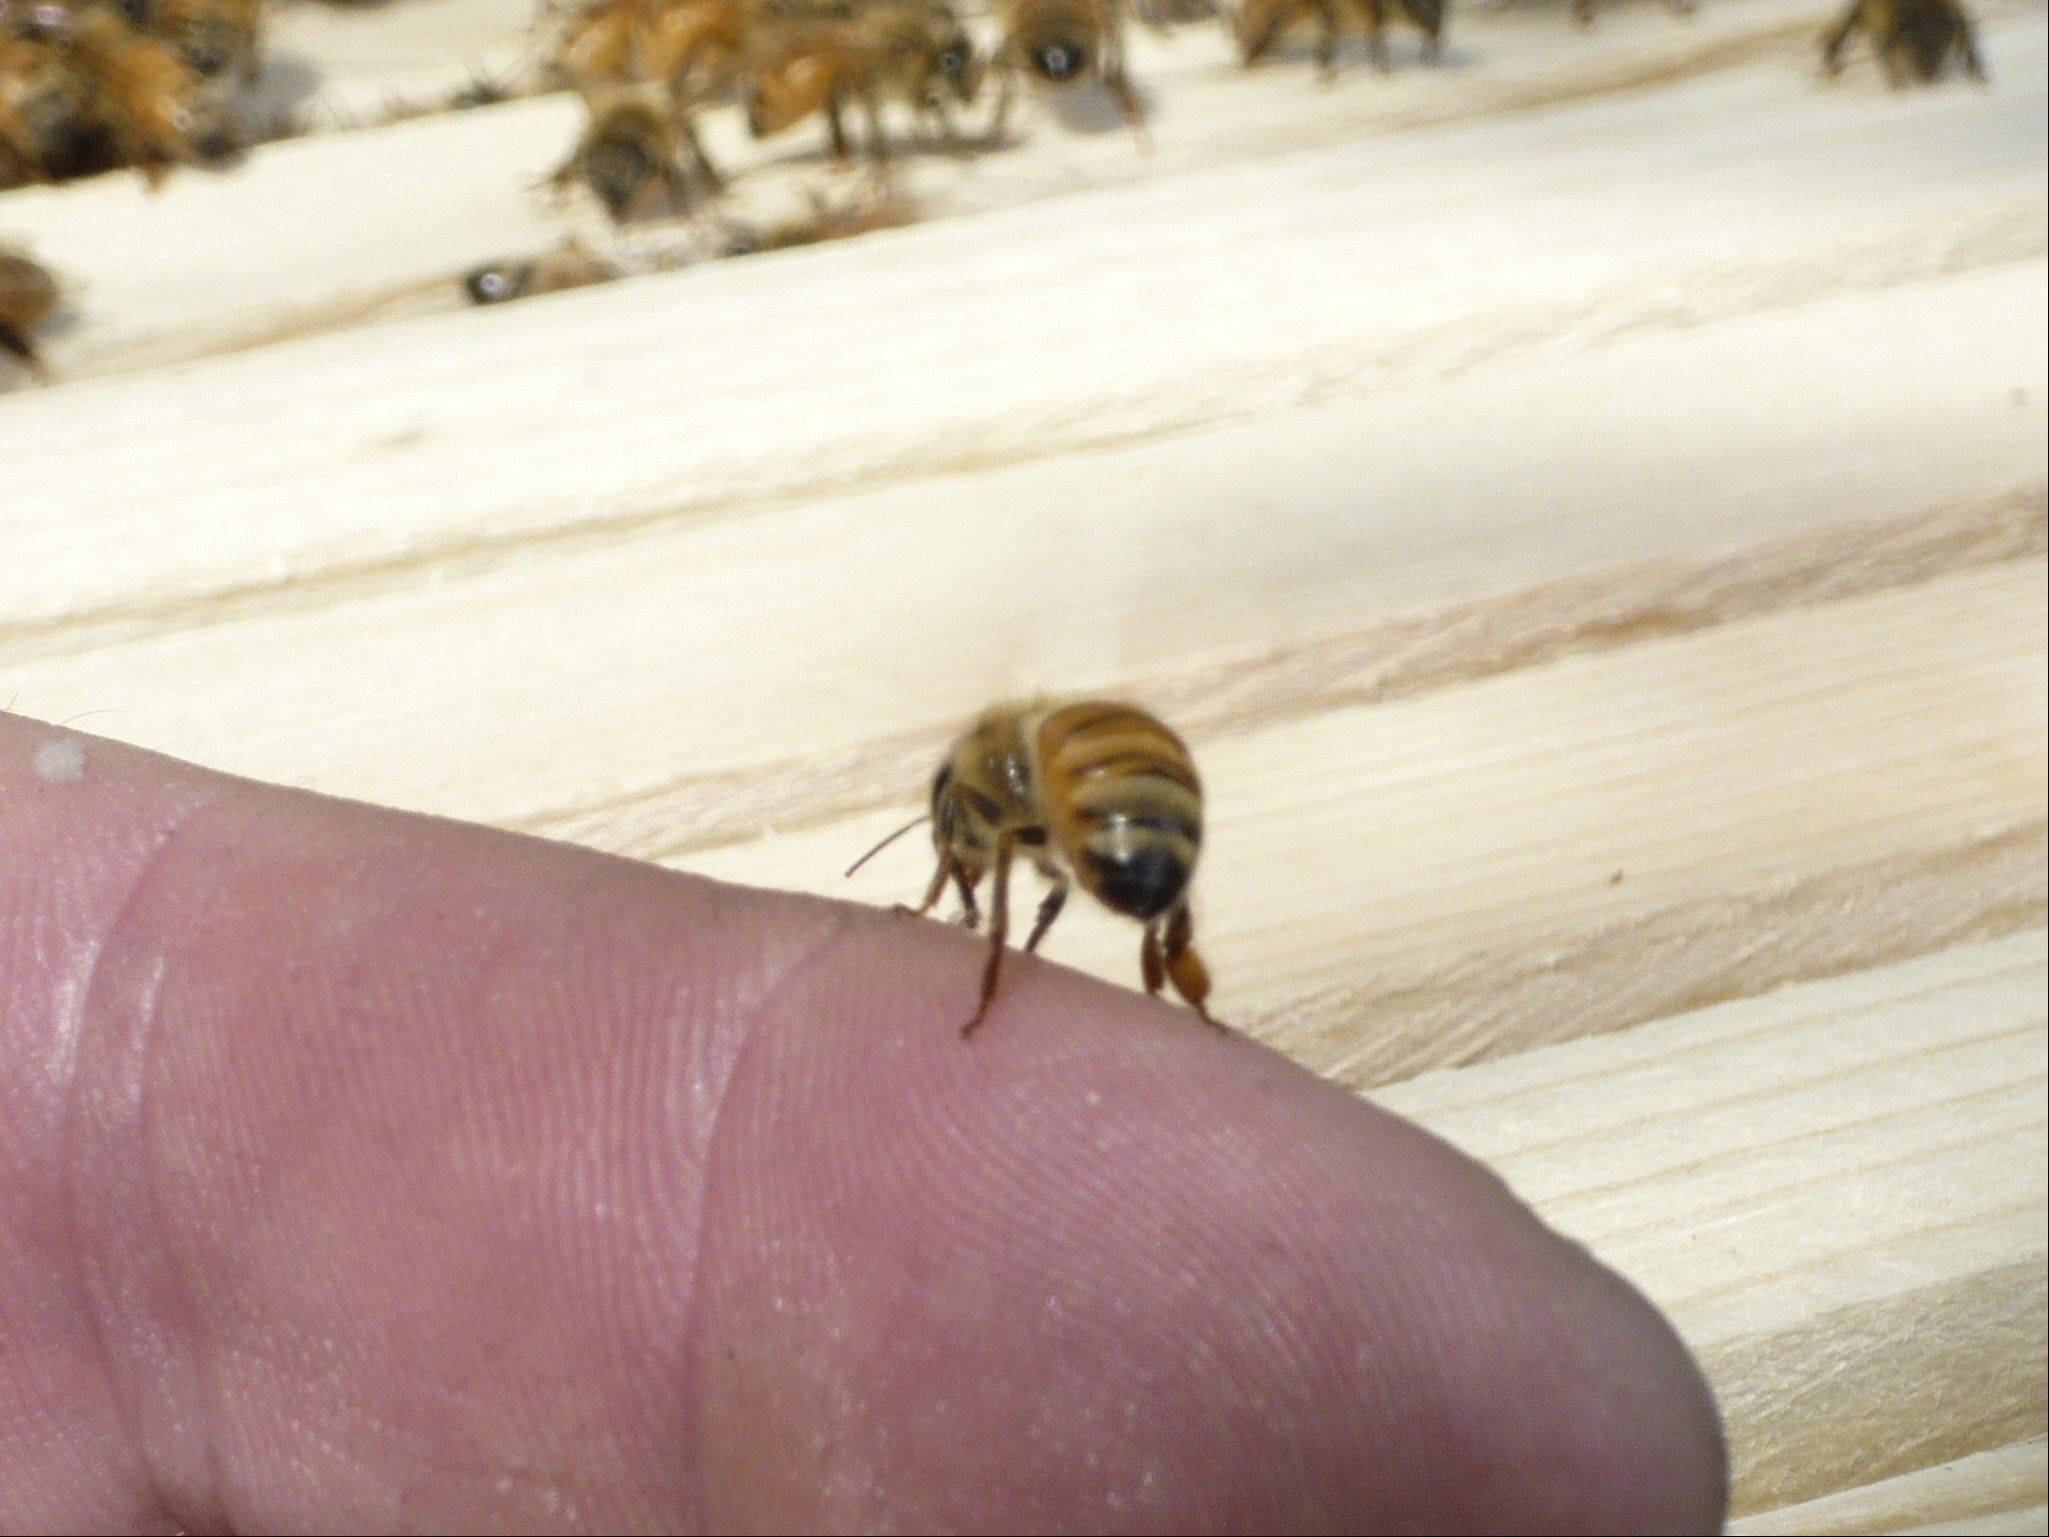 Carpentersville considers its beekeeping ban